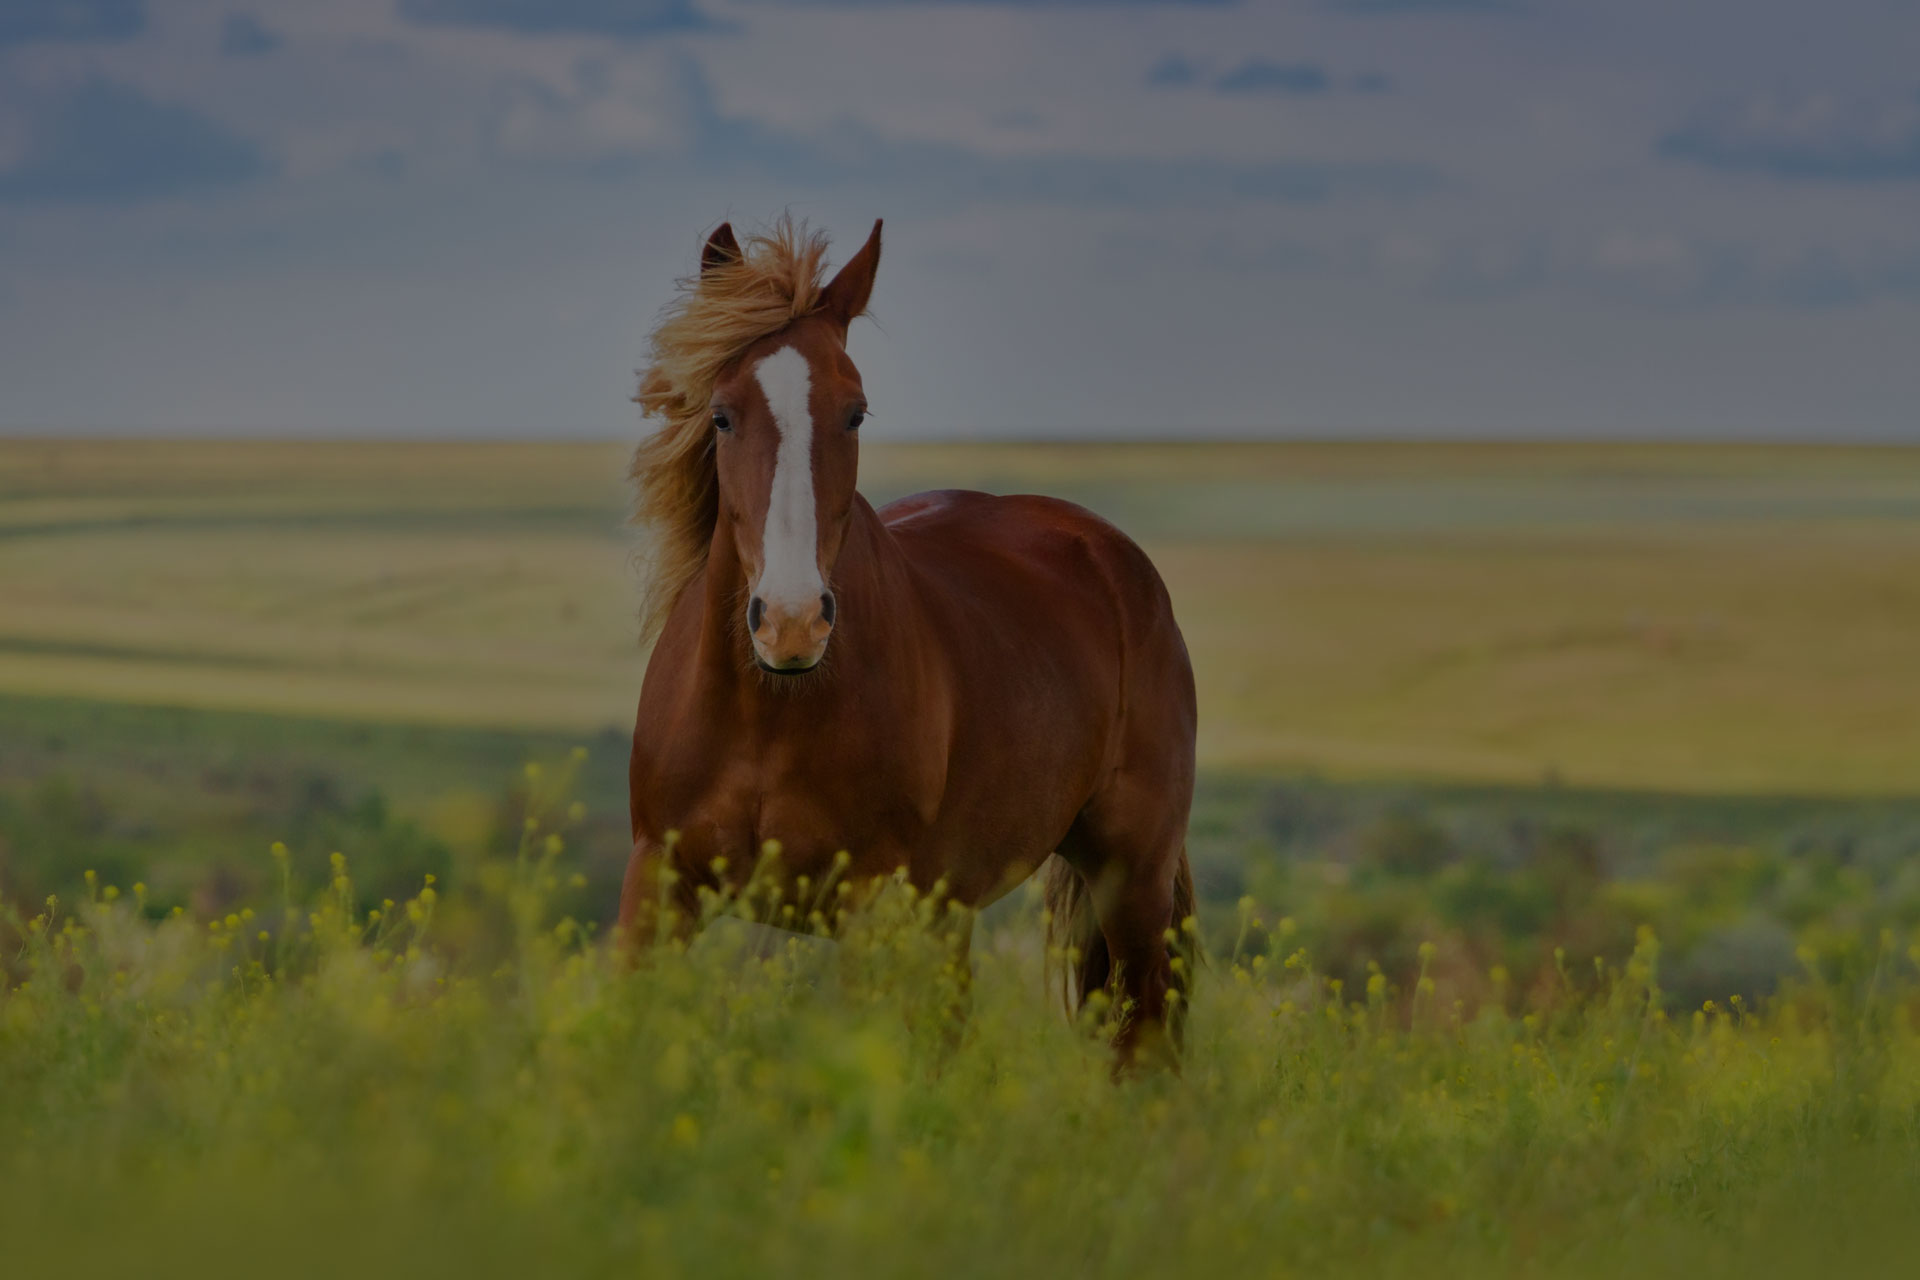 Beautiful red horse with long blond mane in spring field with yellow flowers